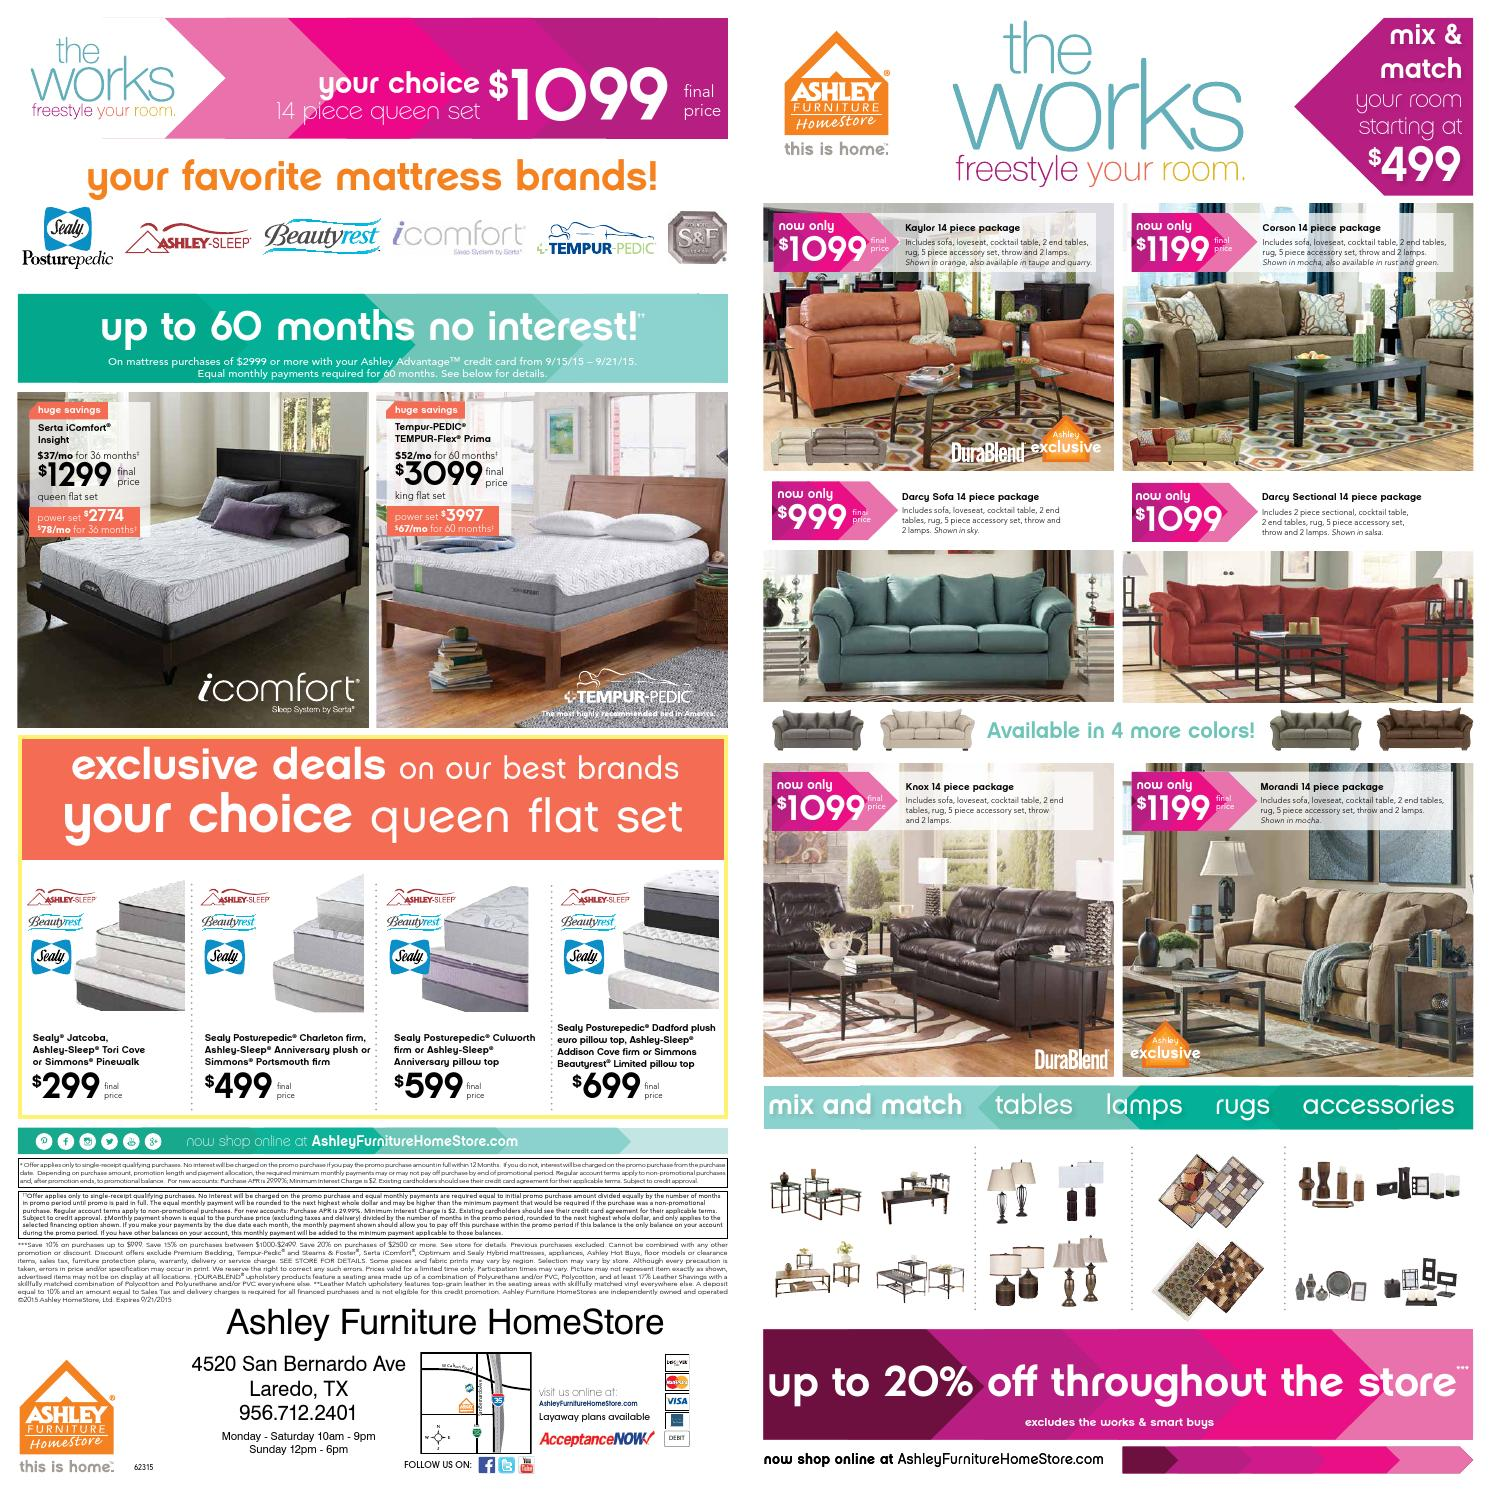 The Works 14 Piece Room Package Event By Ashley Furniture Homestore Of Laredo Issuu